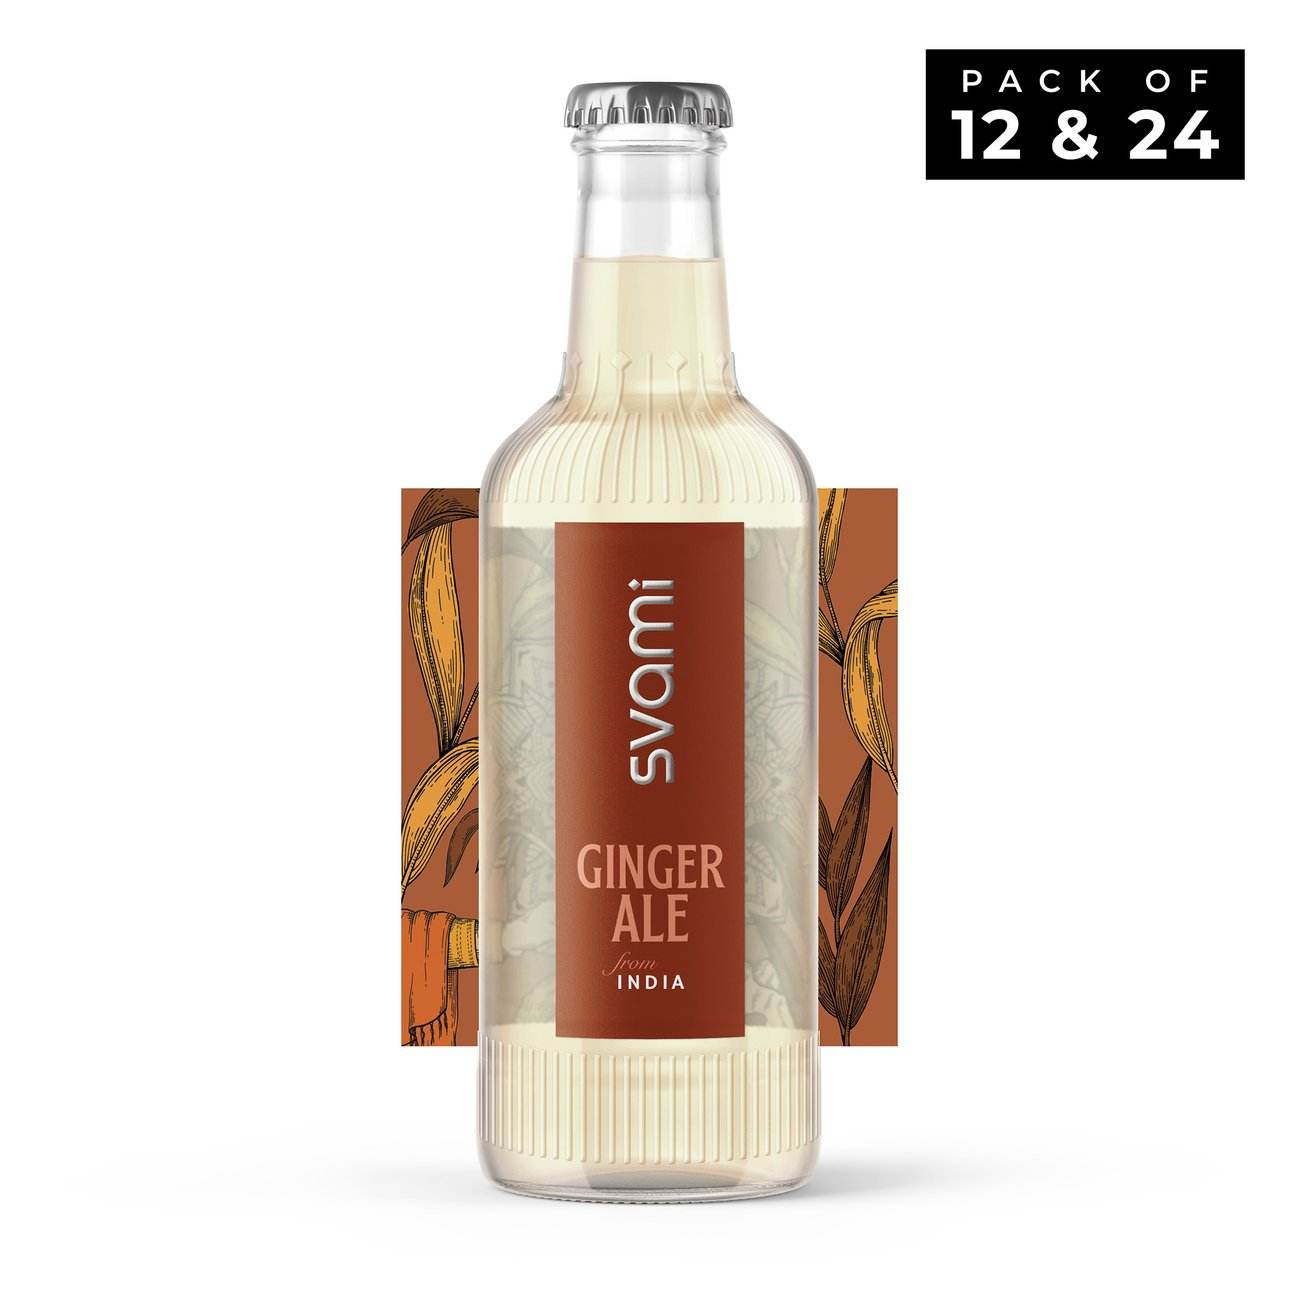 CRED Svami Experience Kit - Assorted Svami Ginger Ale & Svami Original Tonic Water